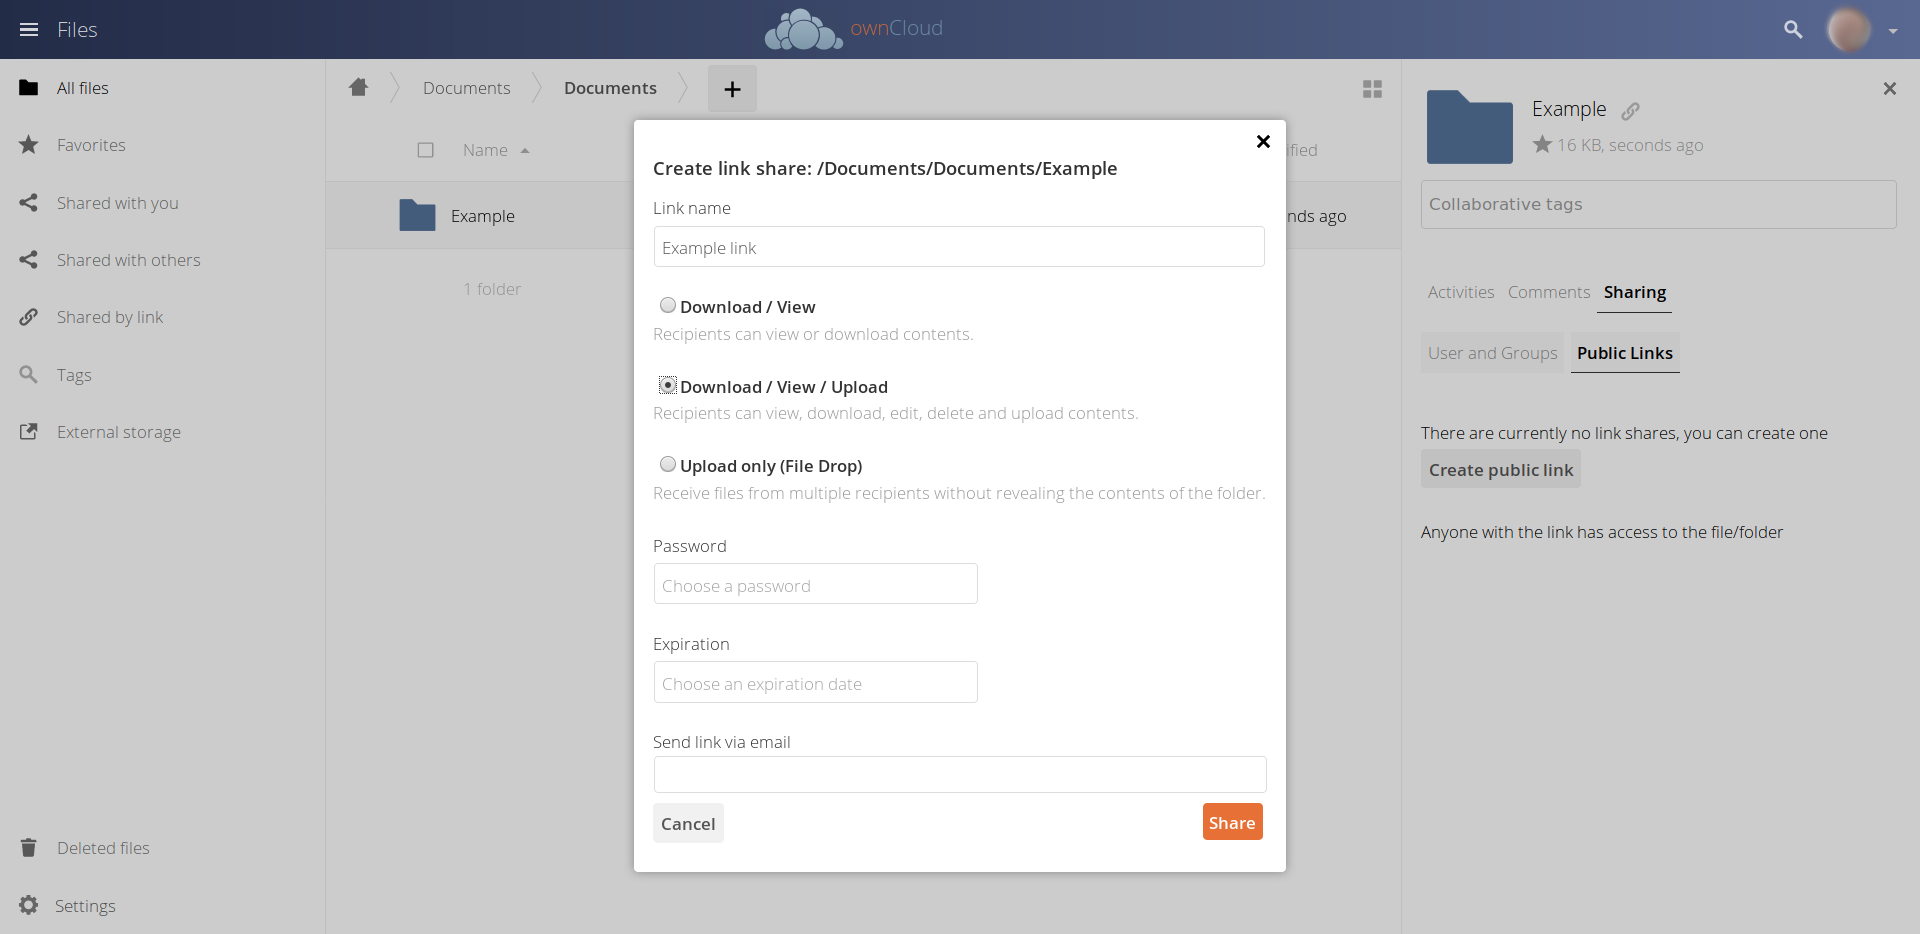 ownCloud OnlyOffice Public link editing share